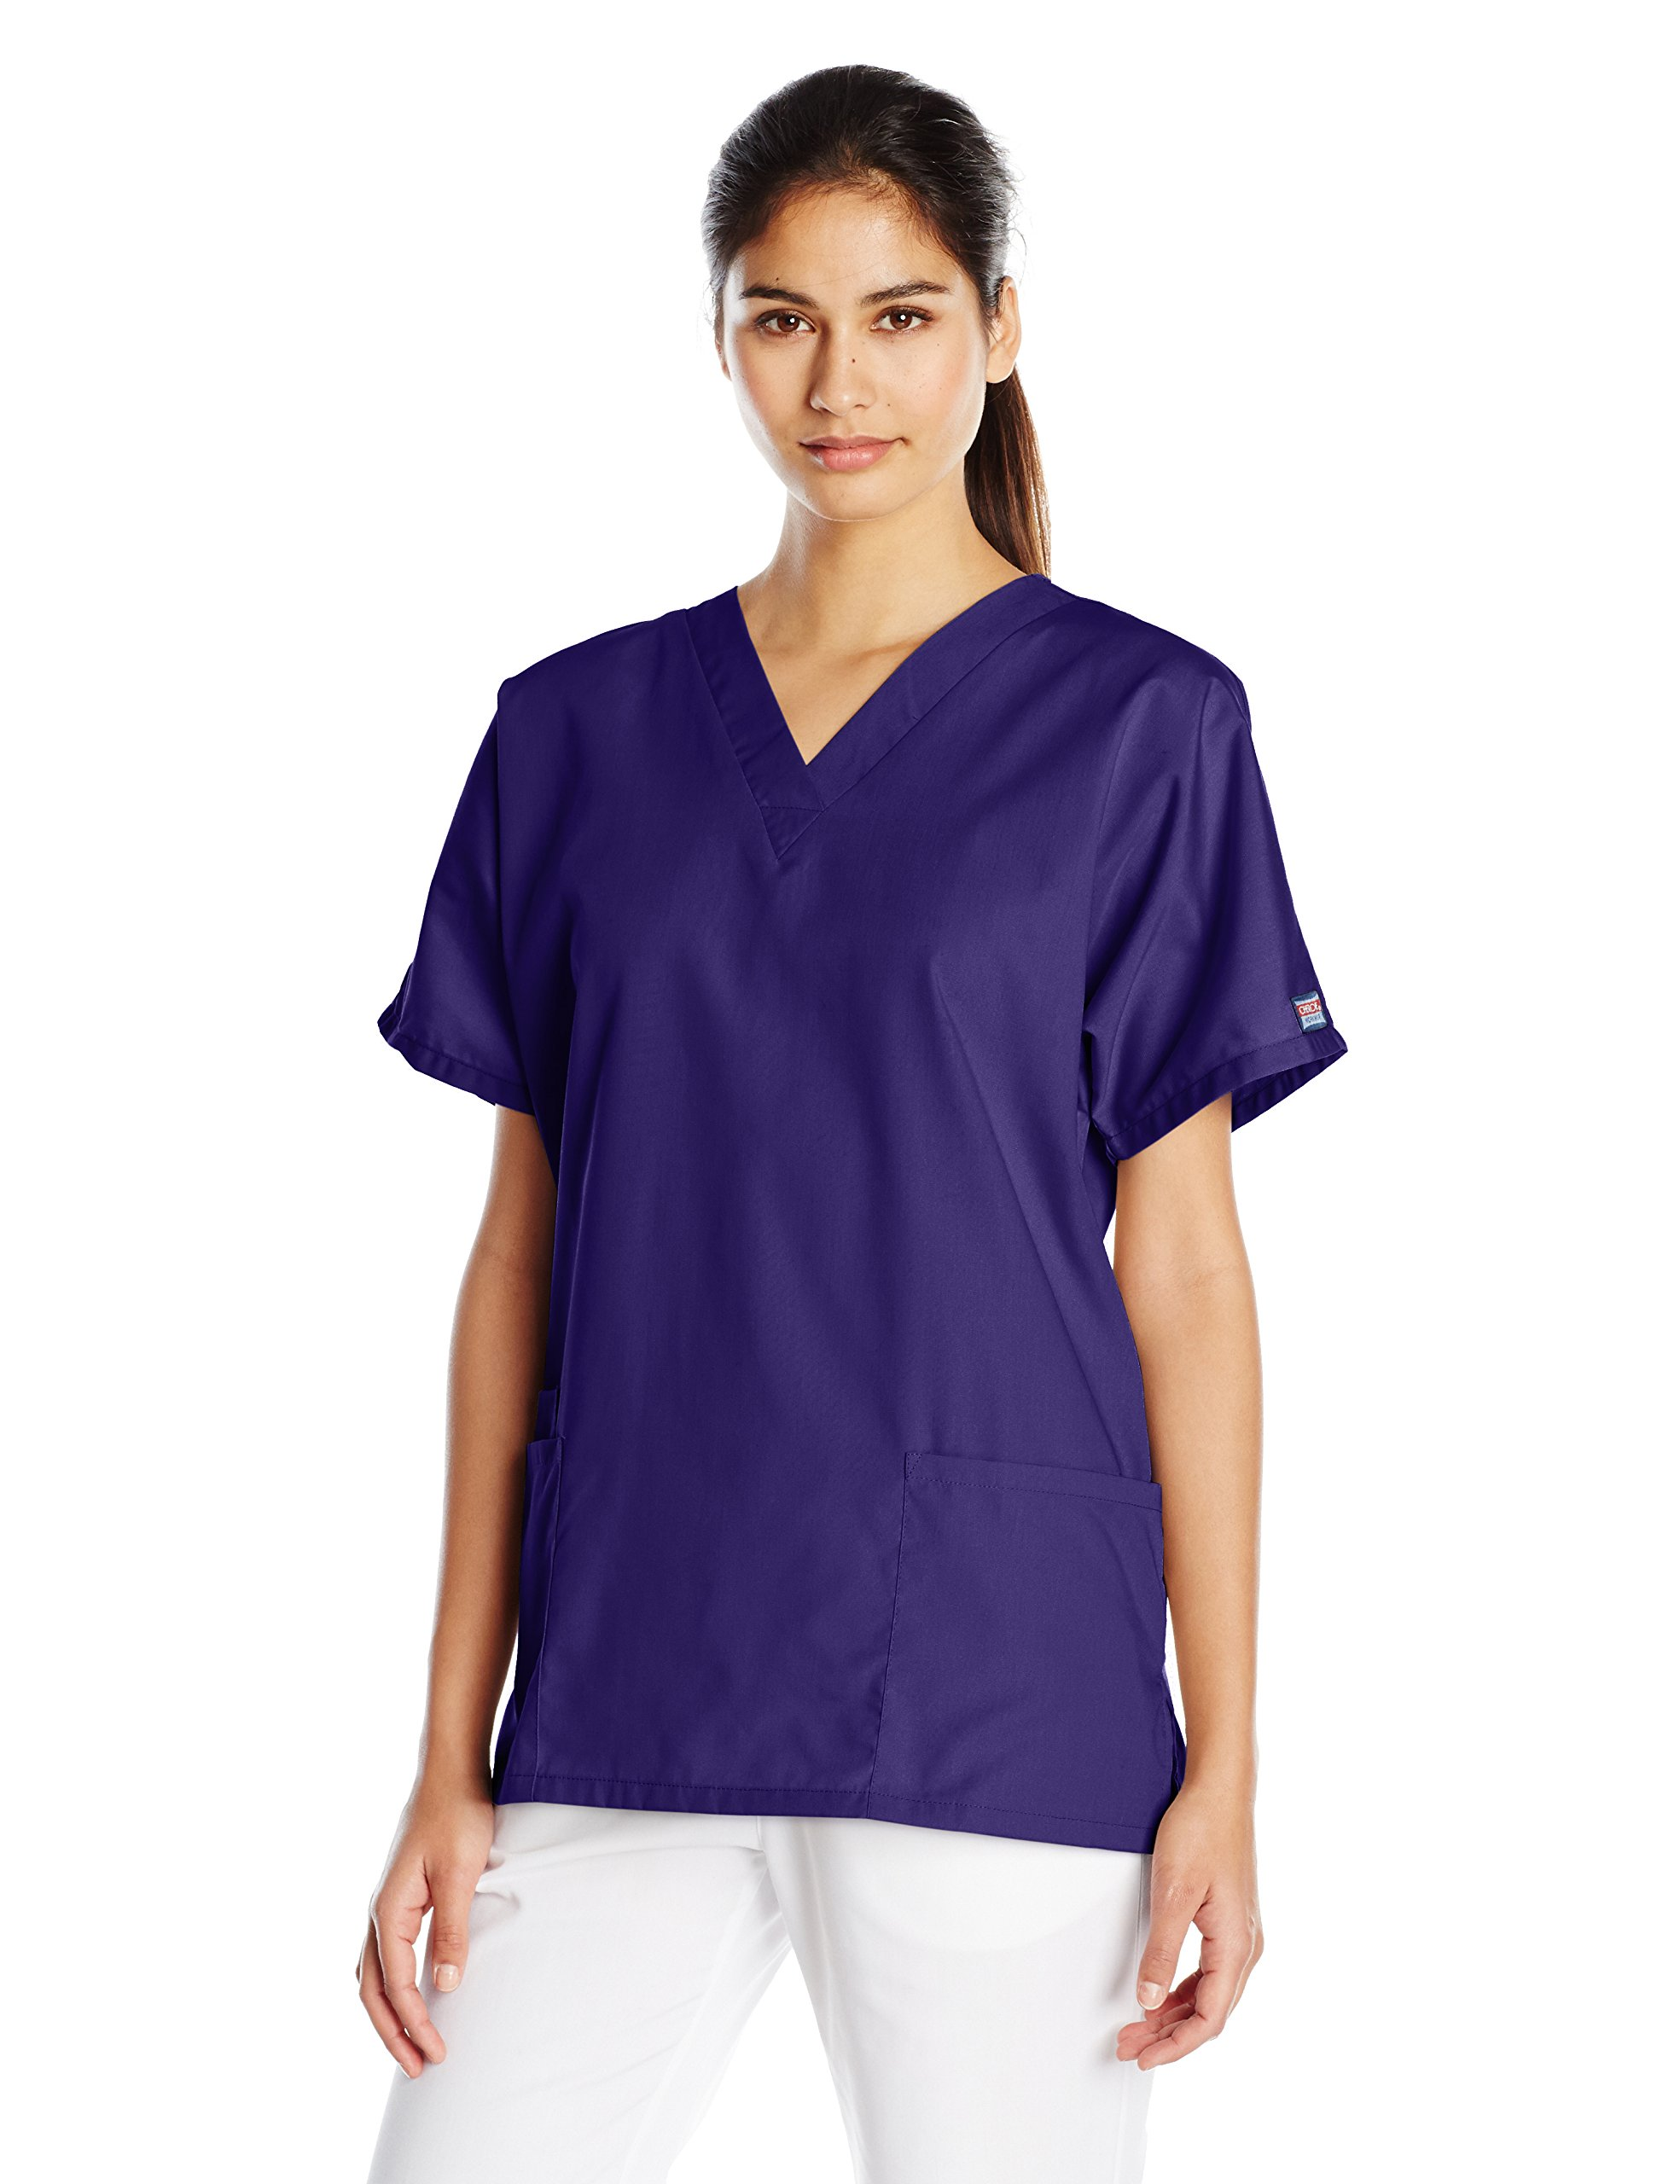 Cherokee Women's V-Neck Scrub Top, Grape, Large